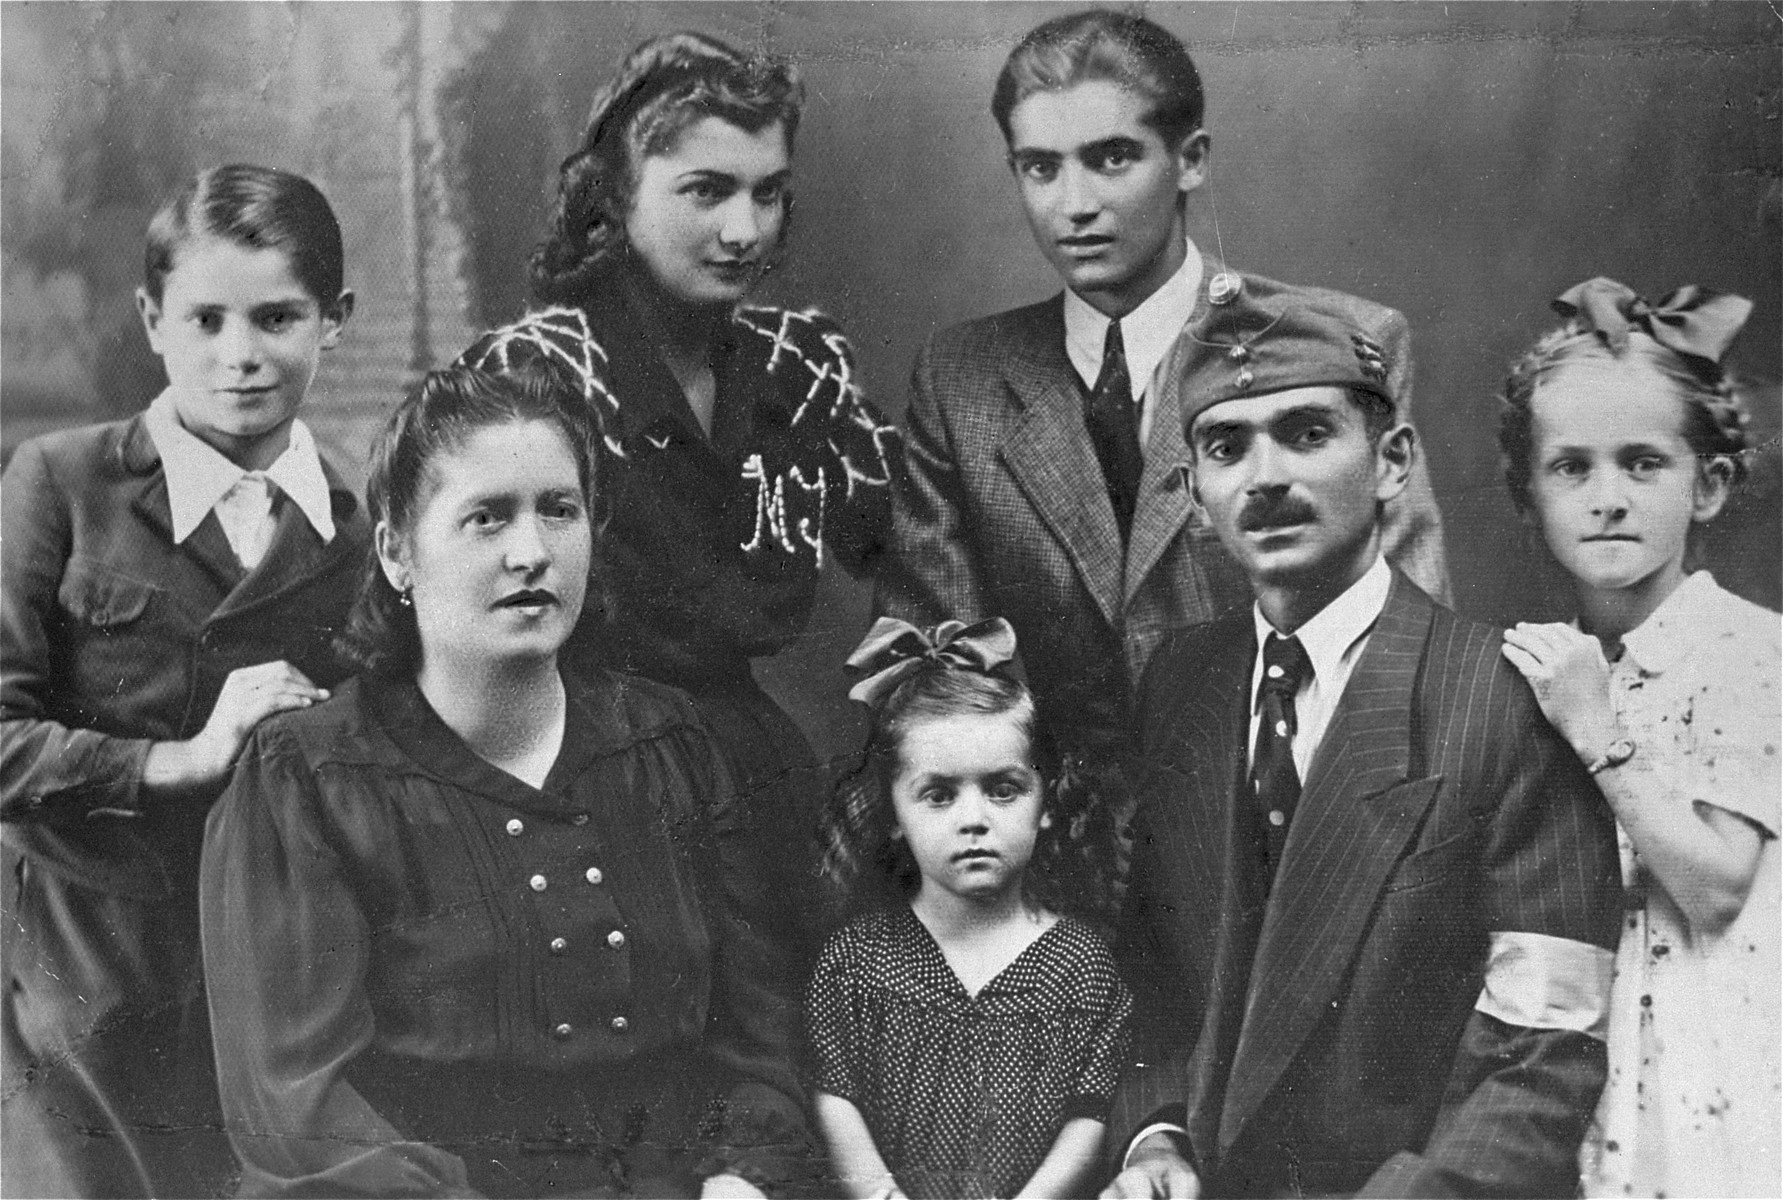 Studio portrait of the Markovits family in Cluj.    Pictured in the front row (left to right) are: Irena, Eva, David, Ilonka; in the back row (left to right) are: Simon, Jolanda and Andre (the donor).  The photo was taken on the occasion of the visit by David Markovits, who had been allowed a one-day leave from his Hungarian labor brigade unit.  Immediately upon his return to the labor brigade, he was deported to Dachau.  David was liberated in Dachau, but died a short time after, on June 20, 1945.  The donor, Andre Markovits, who was liberated from Buchenwald, returned to Cluj after the war and retrieved this photo from the photographic studio in which it was taken in 1943.  Andre was the sole survivor of his family, who were all deported from the Cluj ghetto to Auschwitz in April, 1944.